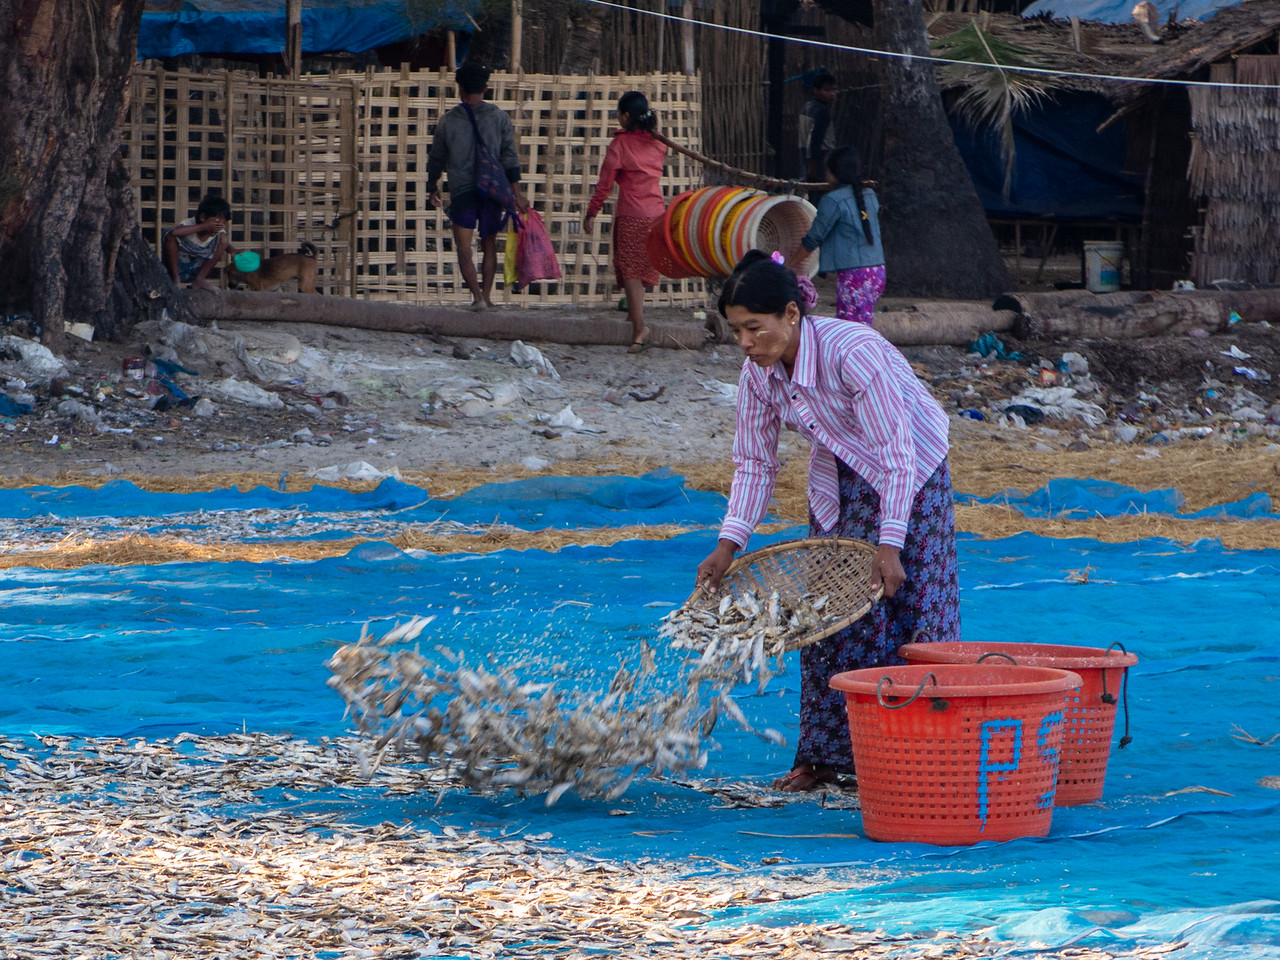 FIsh Being Spread on a TArp for Drying in Myanmar Fishing Village